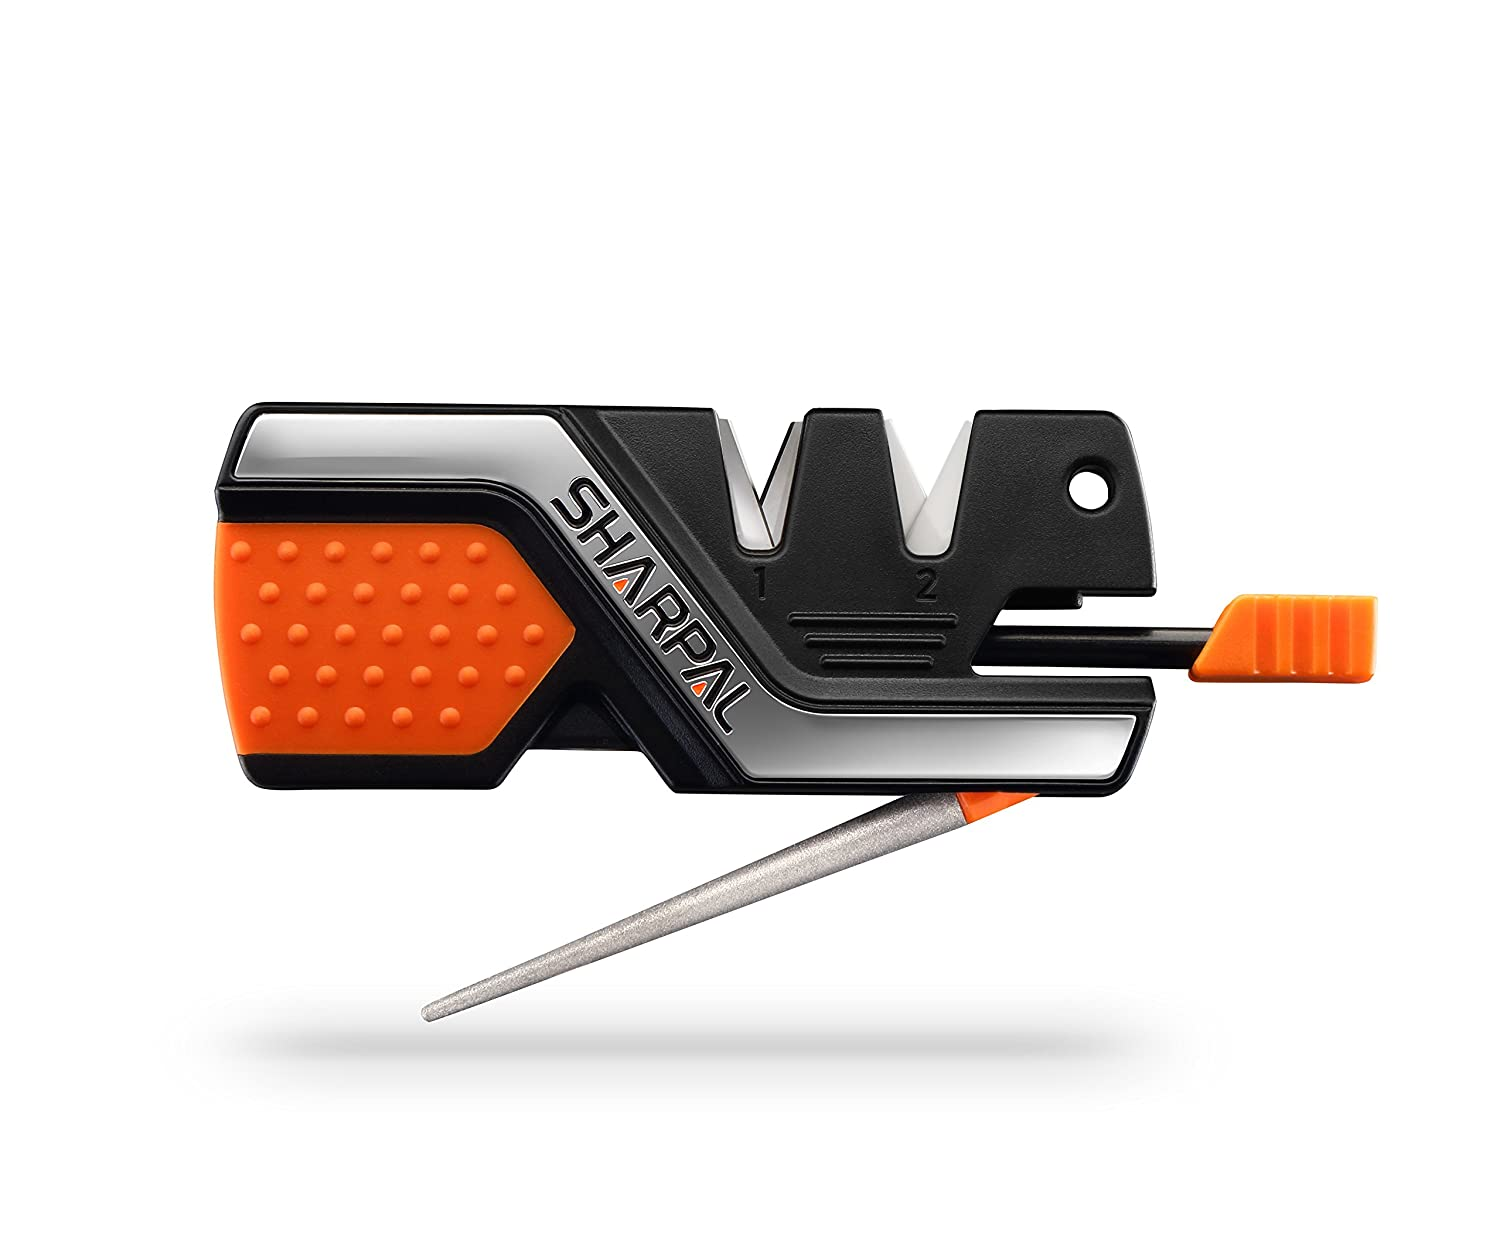 Sharpal 101N 6-in-1 Knife Sharpener and Survival Tool